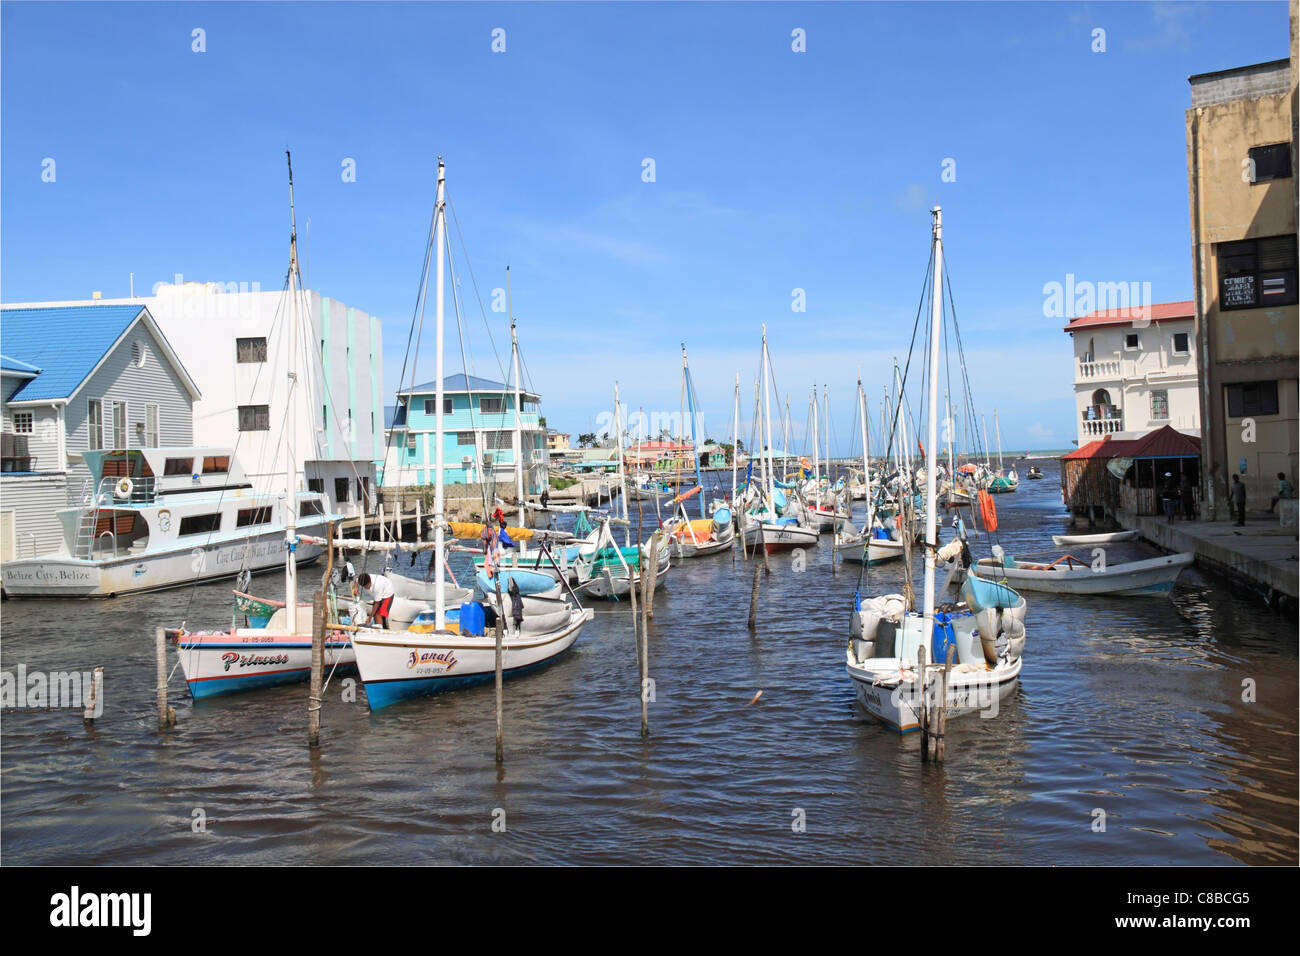 Boats on Haulover Creek, Marine Terminal on left, Fort George, Belize City, Belize, Caribbean, Central America - Stock Image